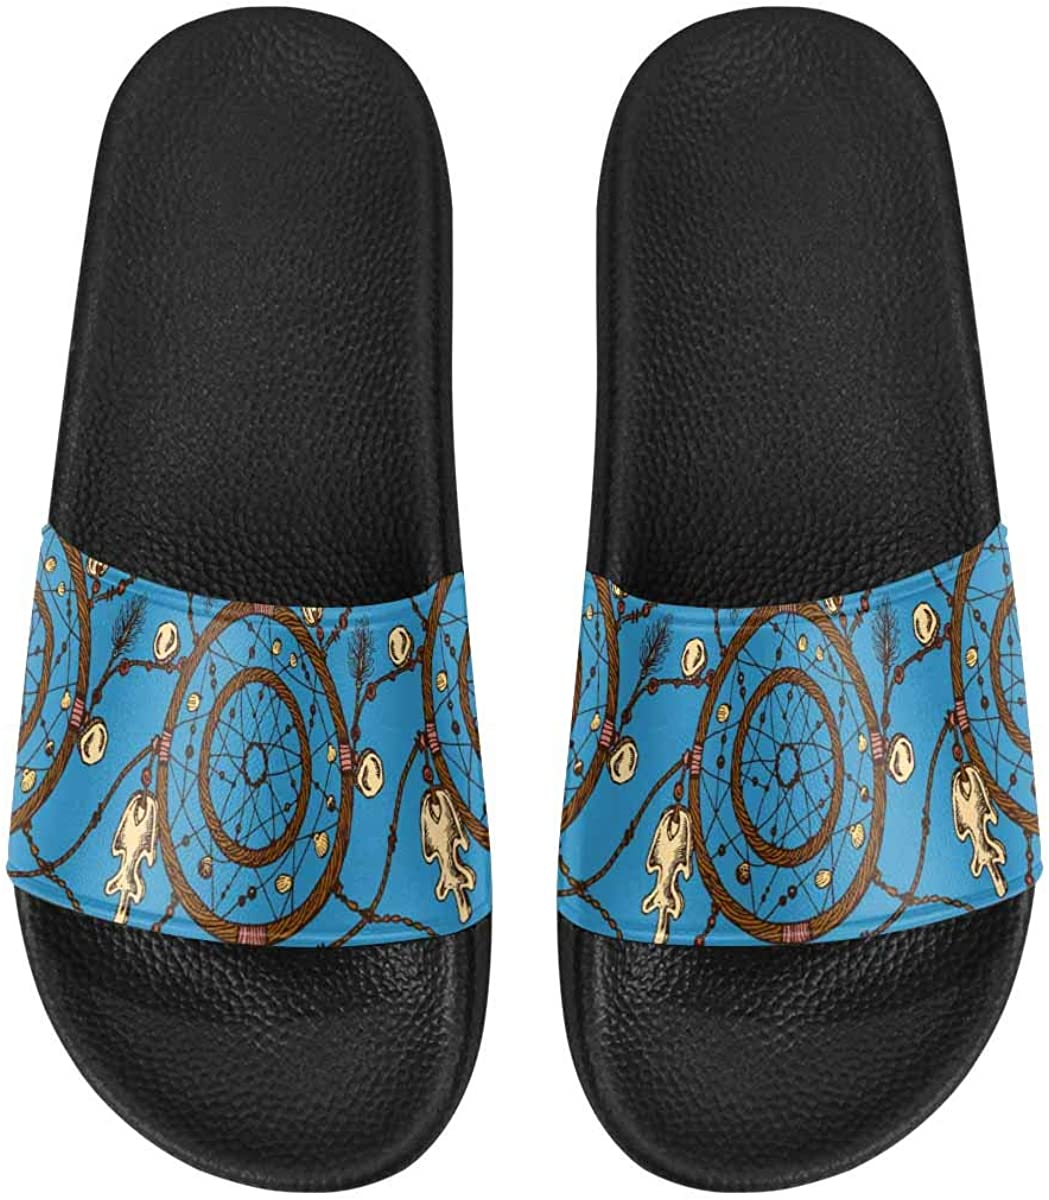 InterestPrint Casual Slipper Sandals for Women with PVC Straps Different Brands with Flowers